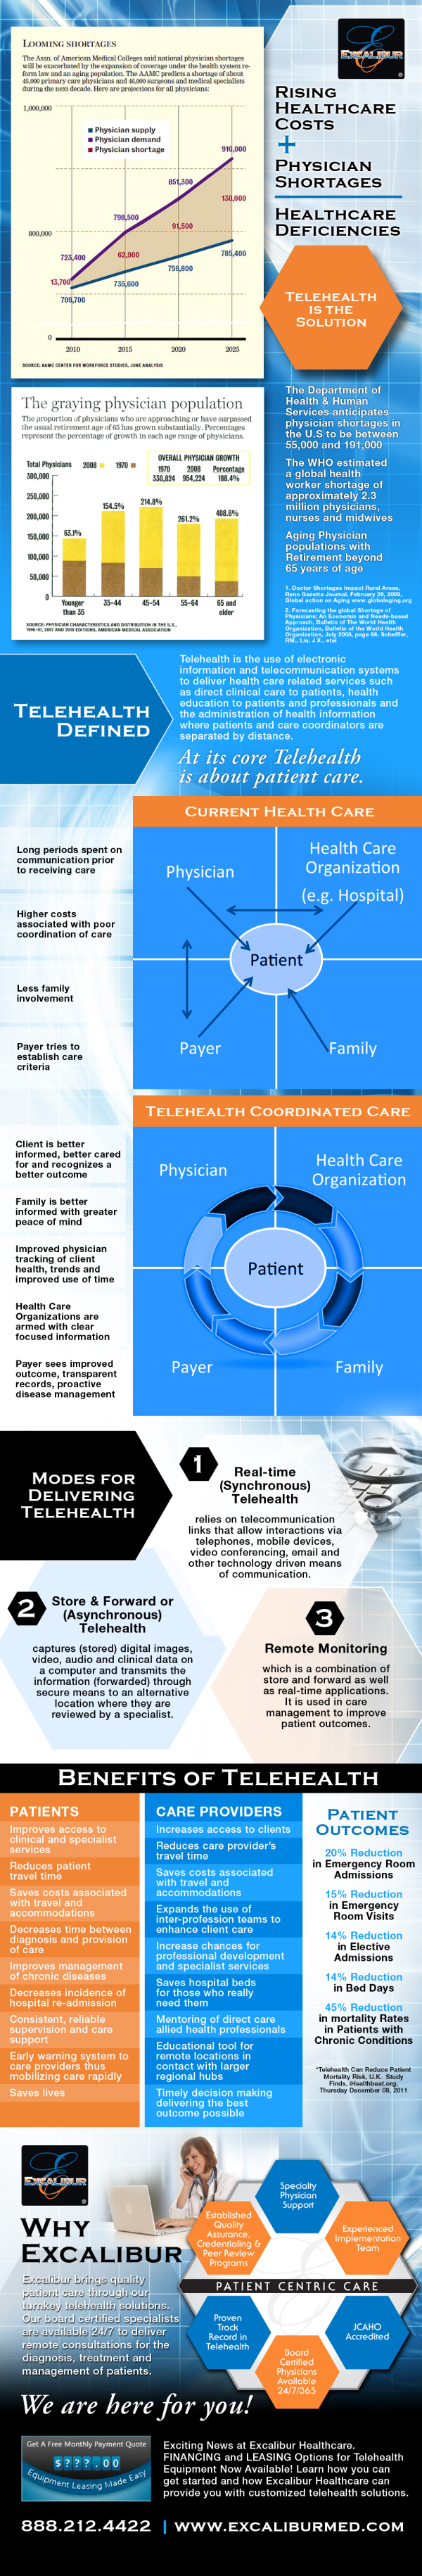 ☞ MD ☆☆☆ Rising healthcare costs and physician shortages. Is #telehealth the solution? #infographic #hcsm #hcsmeu